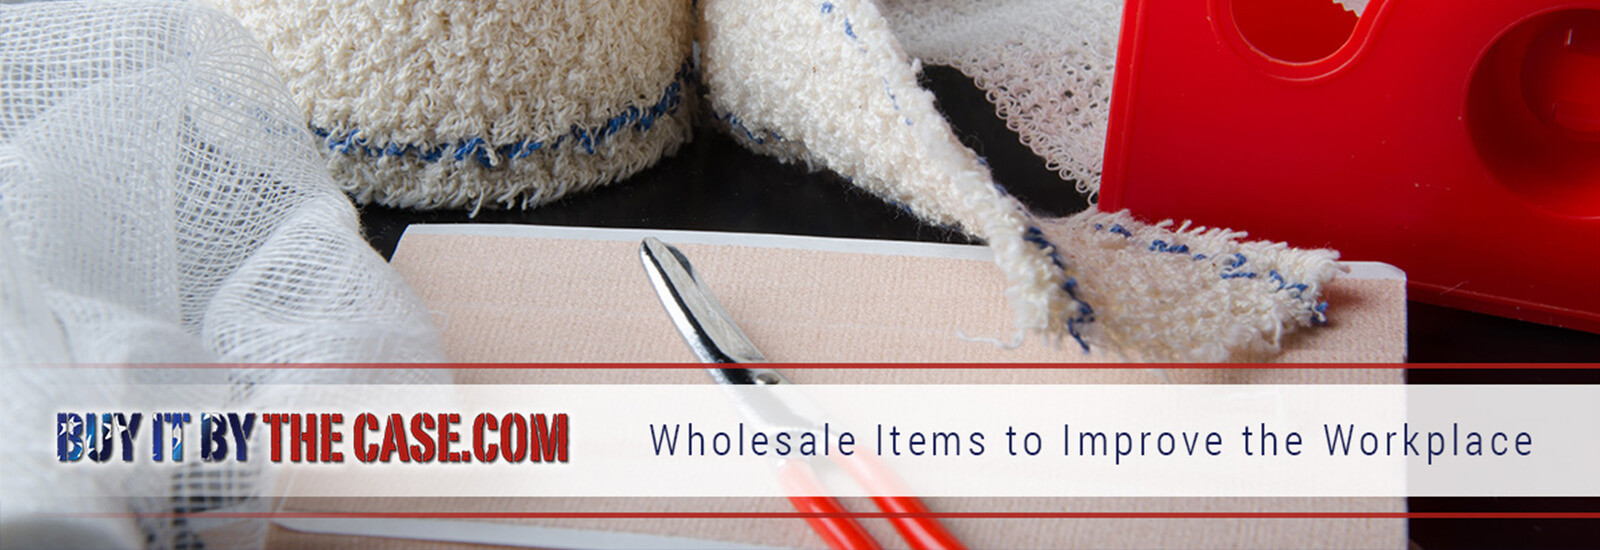 Wholesale Items to Improve the Workplace